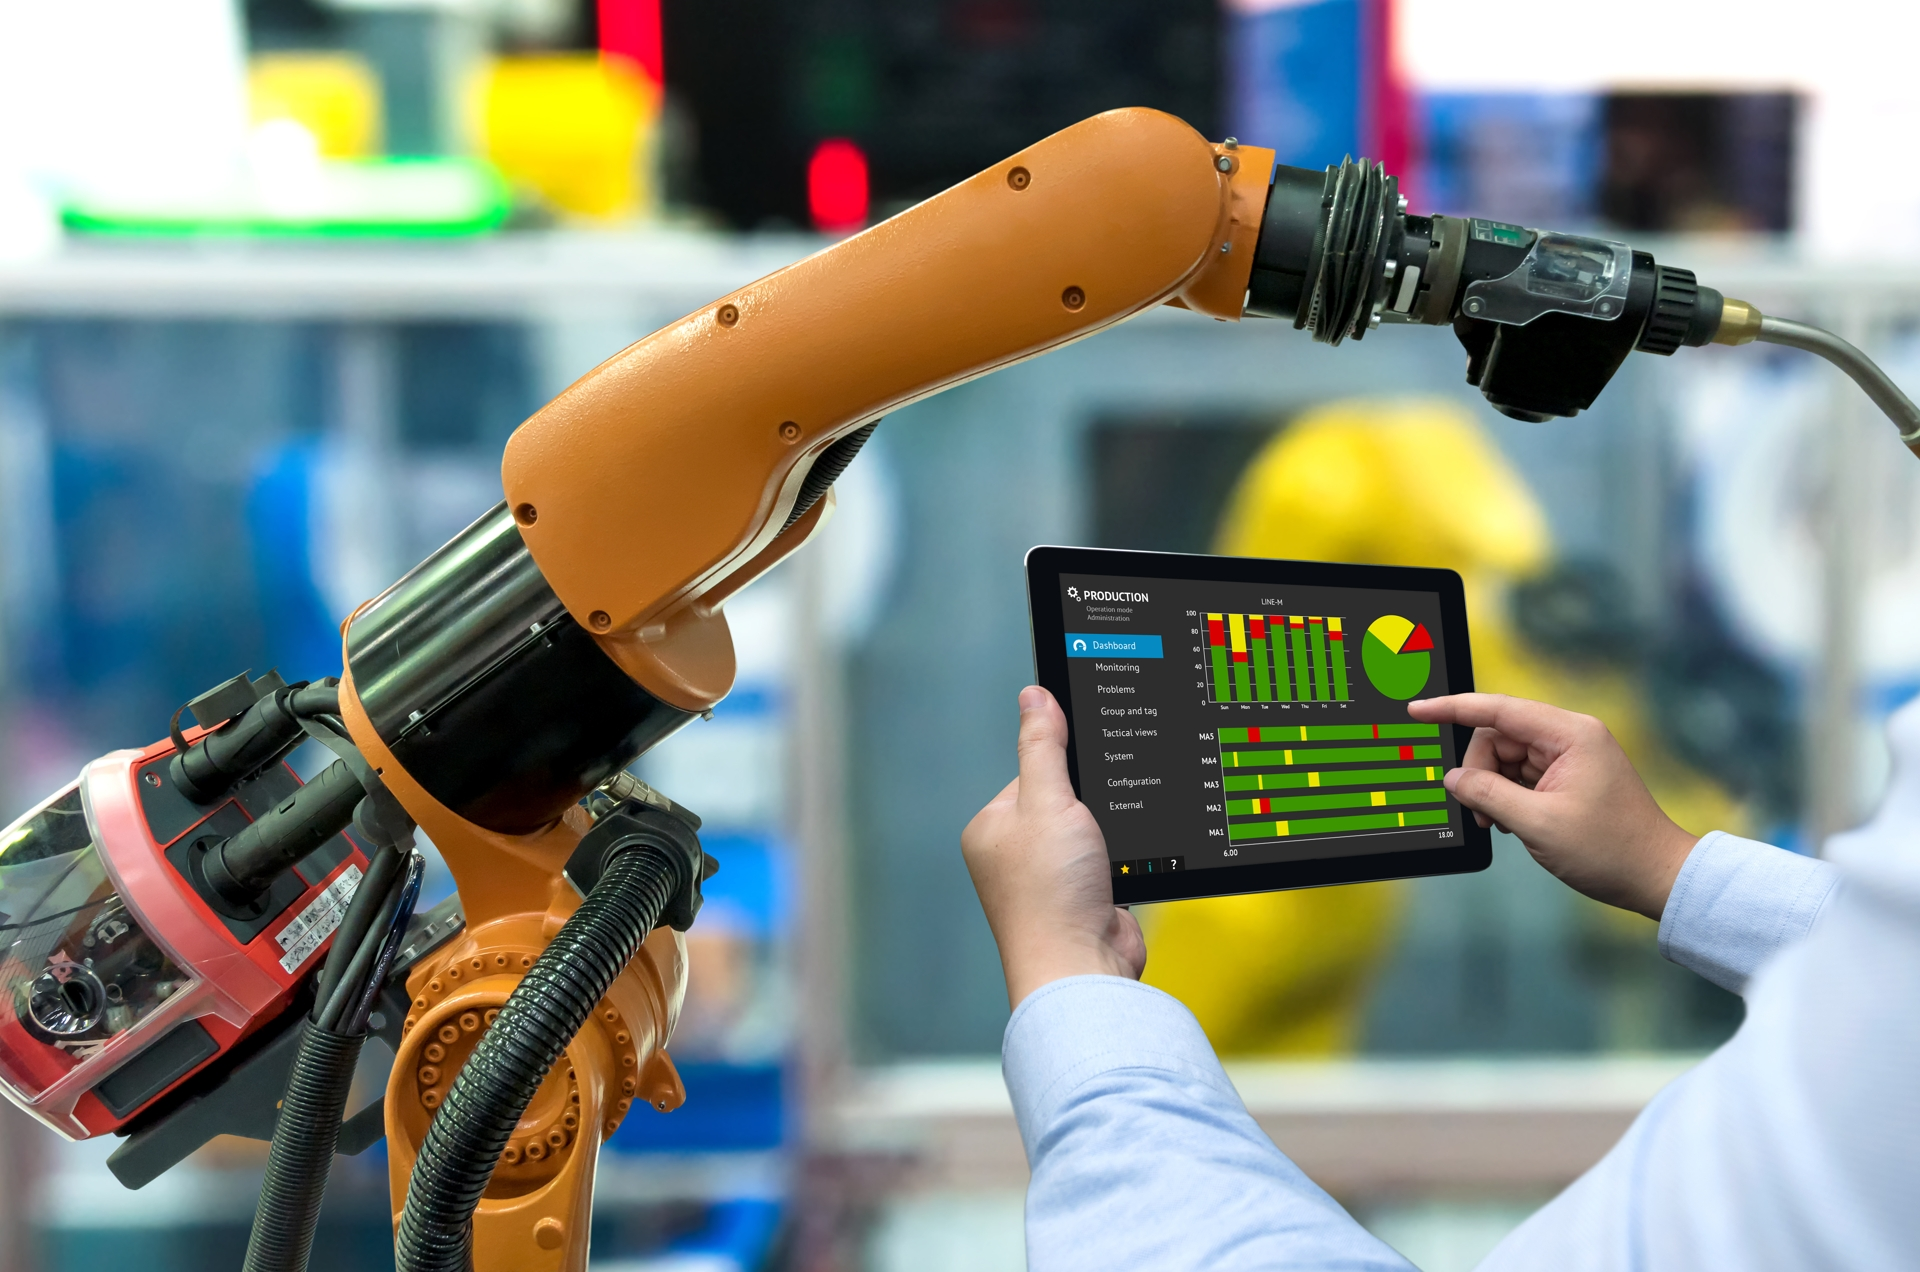 Production - Industry 4.0 manufacturing environment